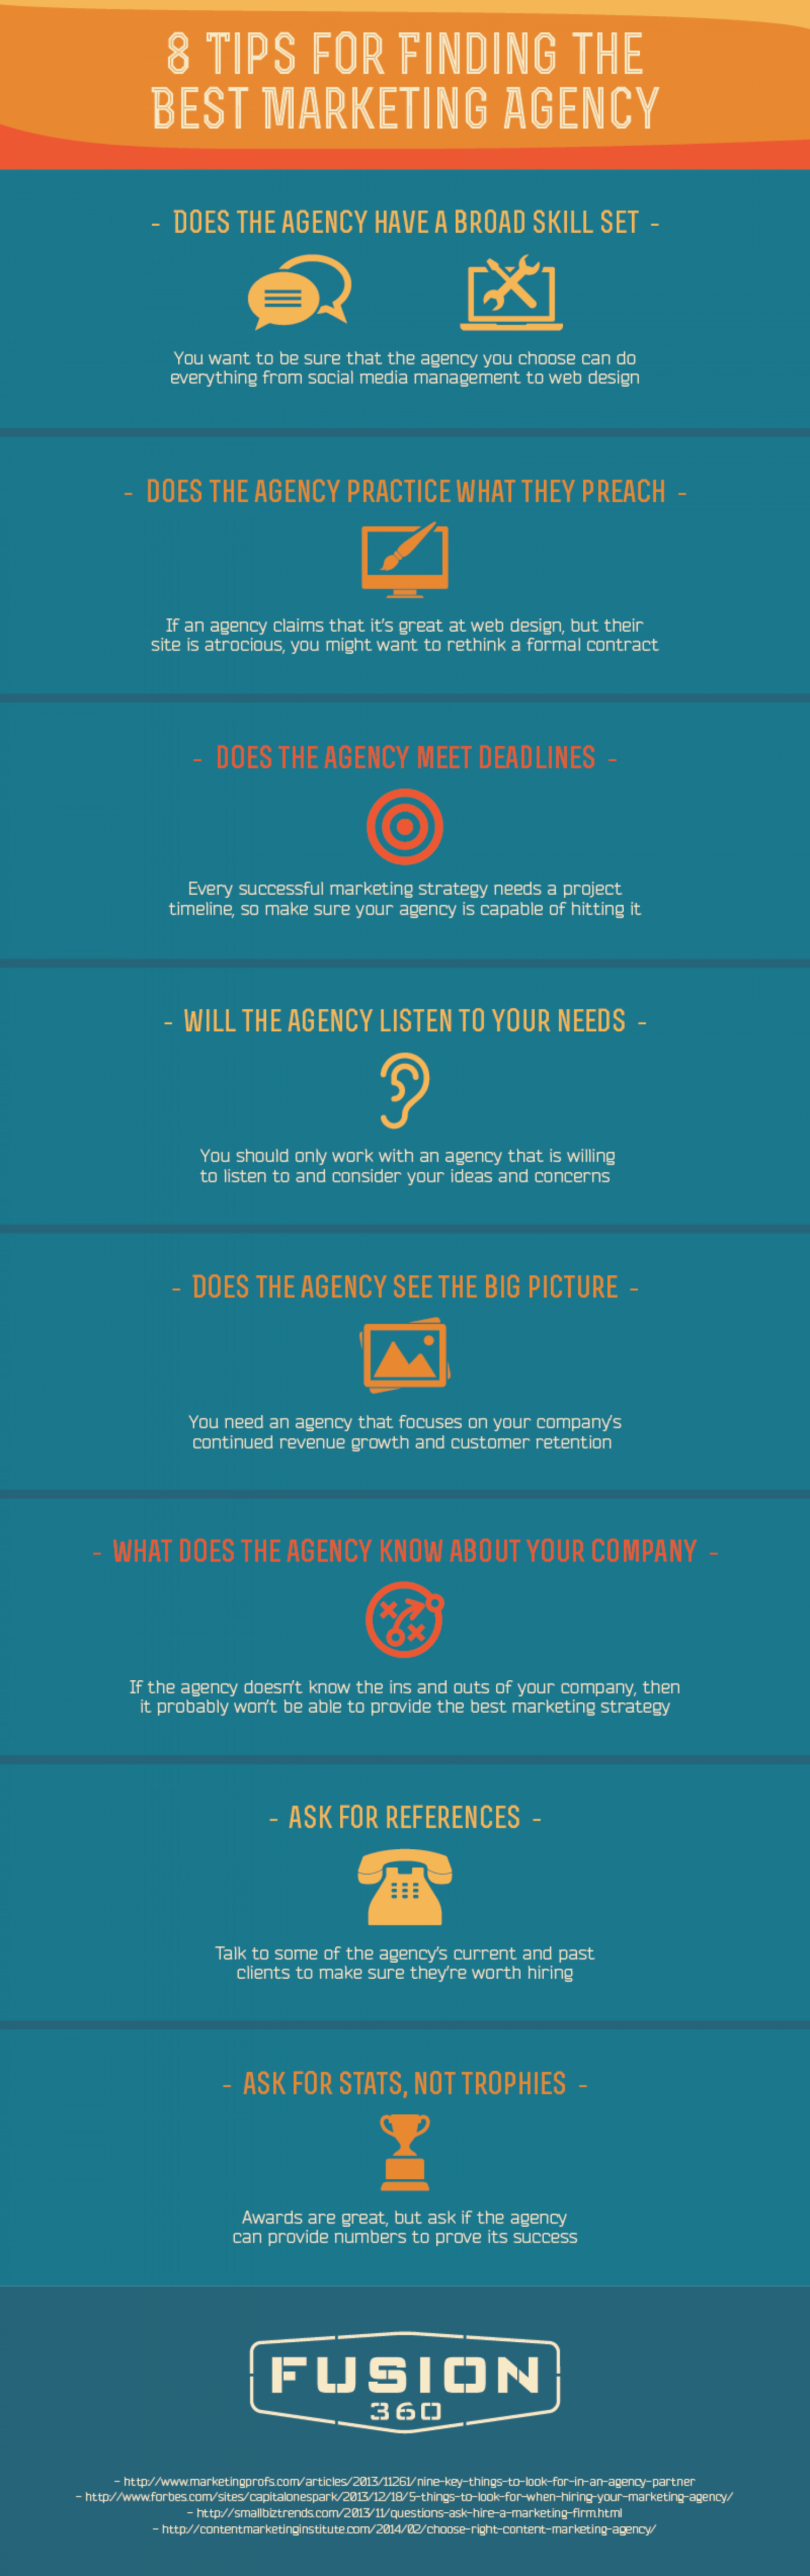 8 Questions to Ask Before Working With a Marketing Agency Infographic